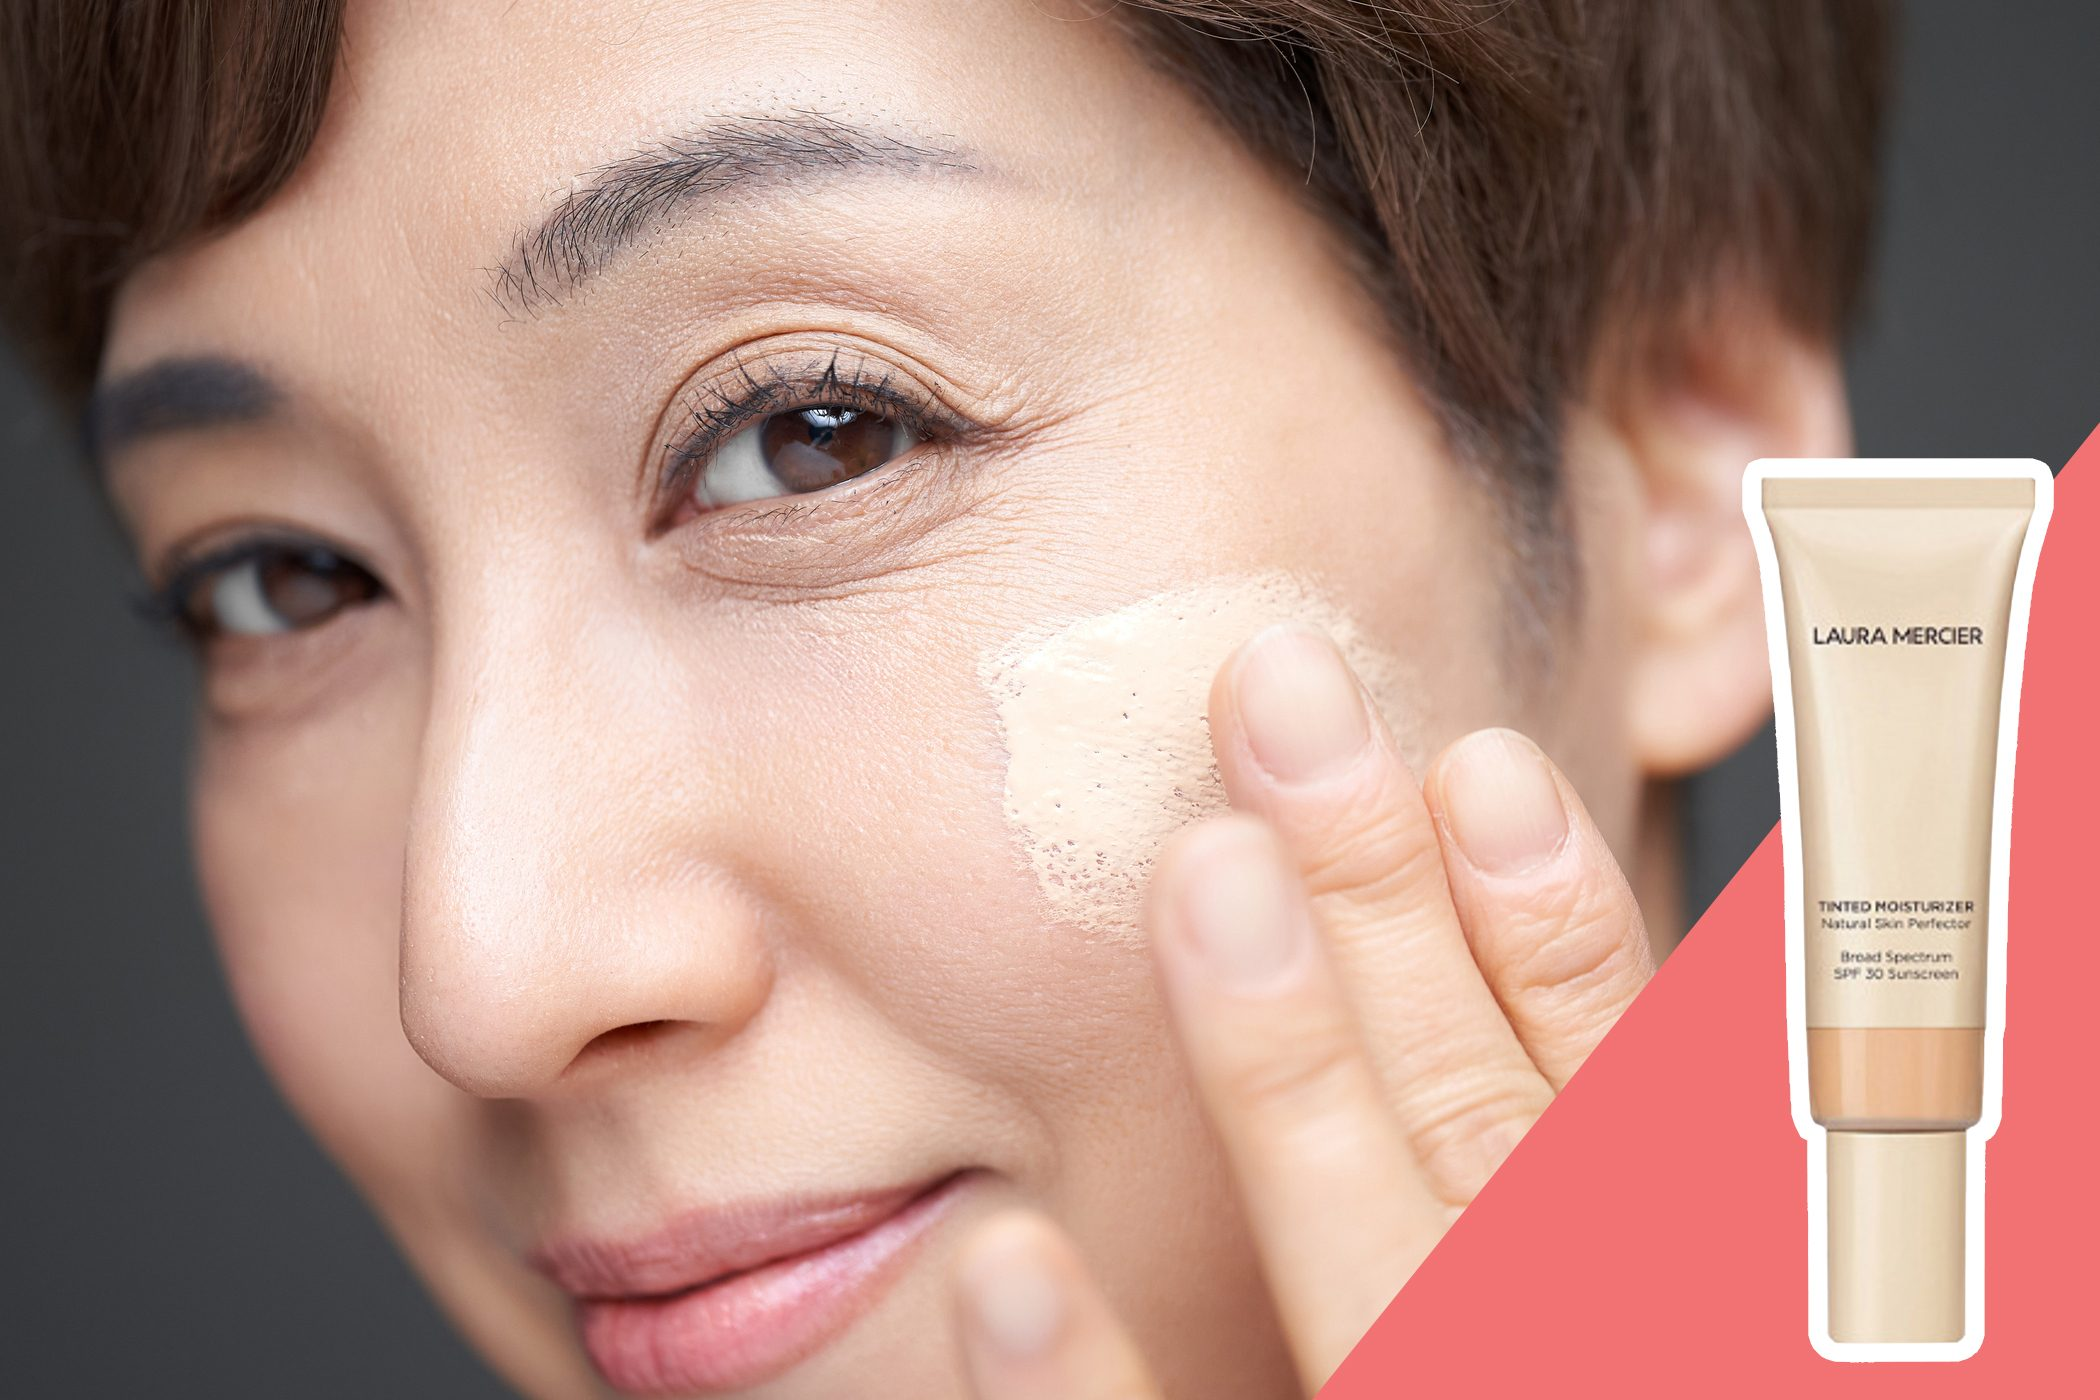 inset of tinted moisturizer on inset of woman applying makeup